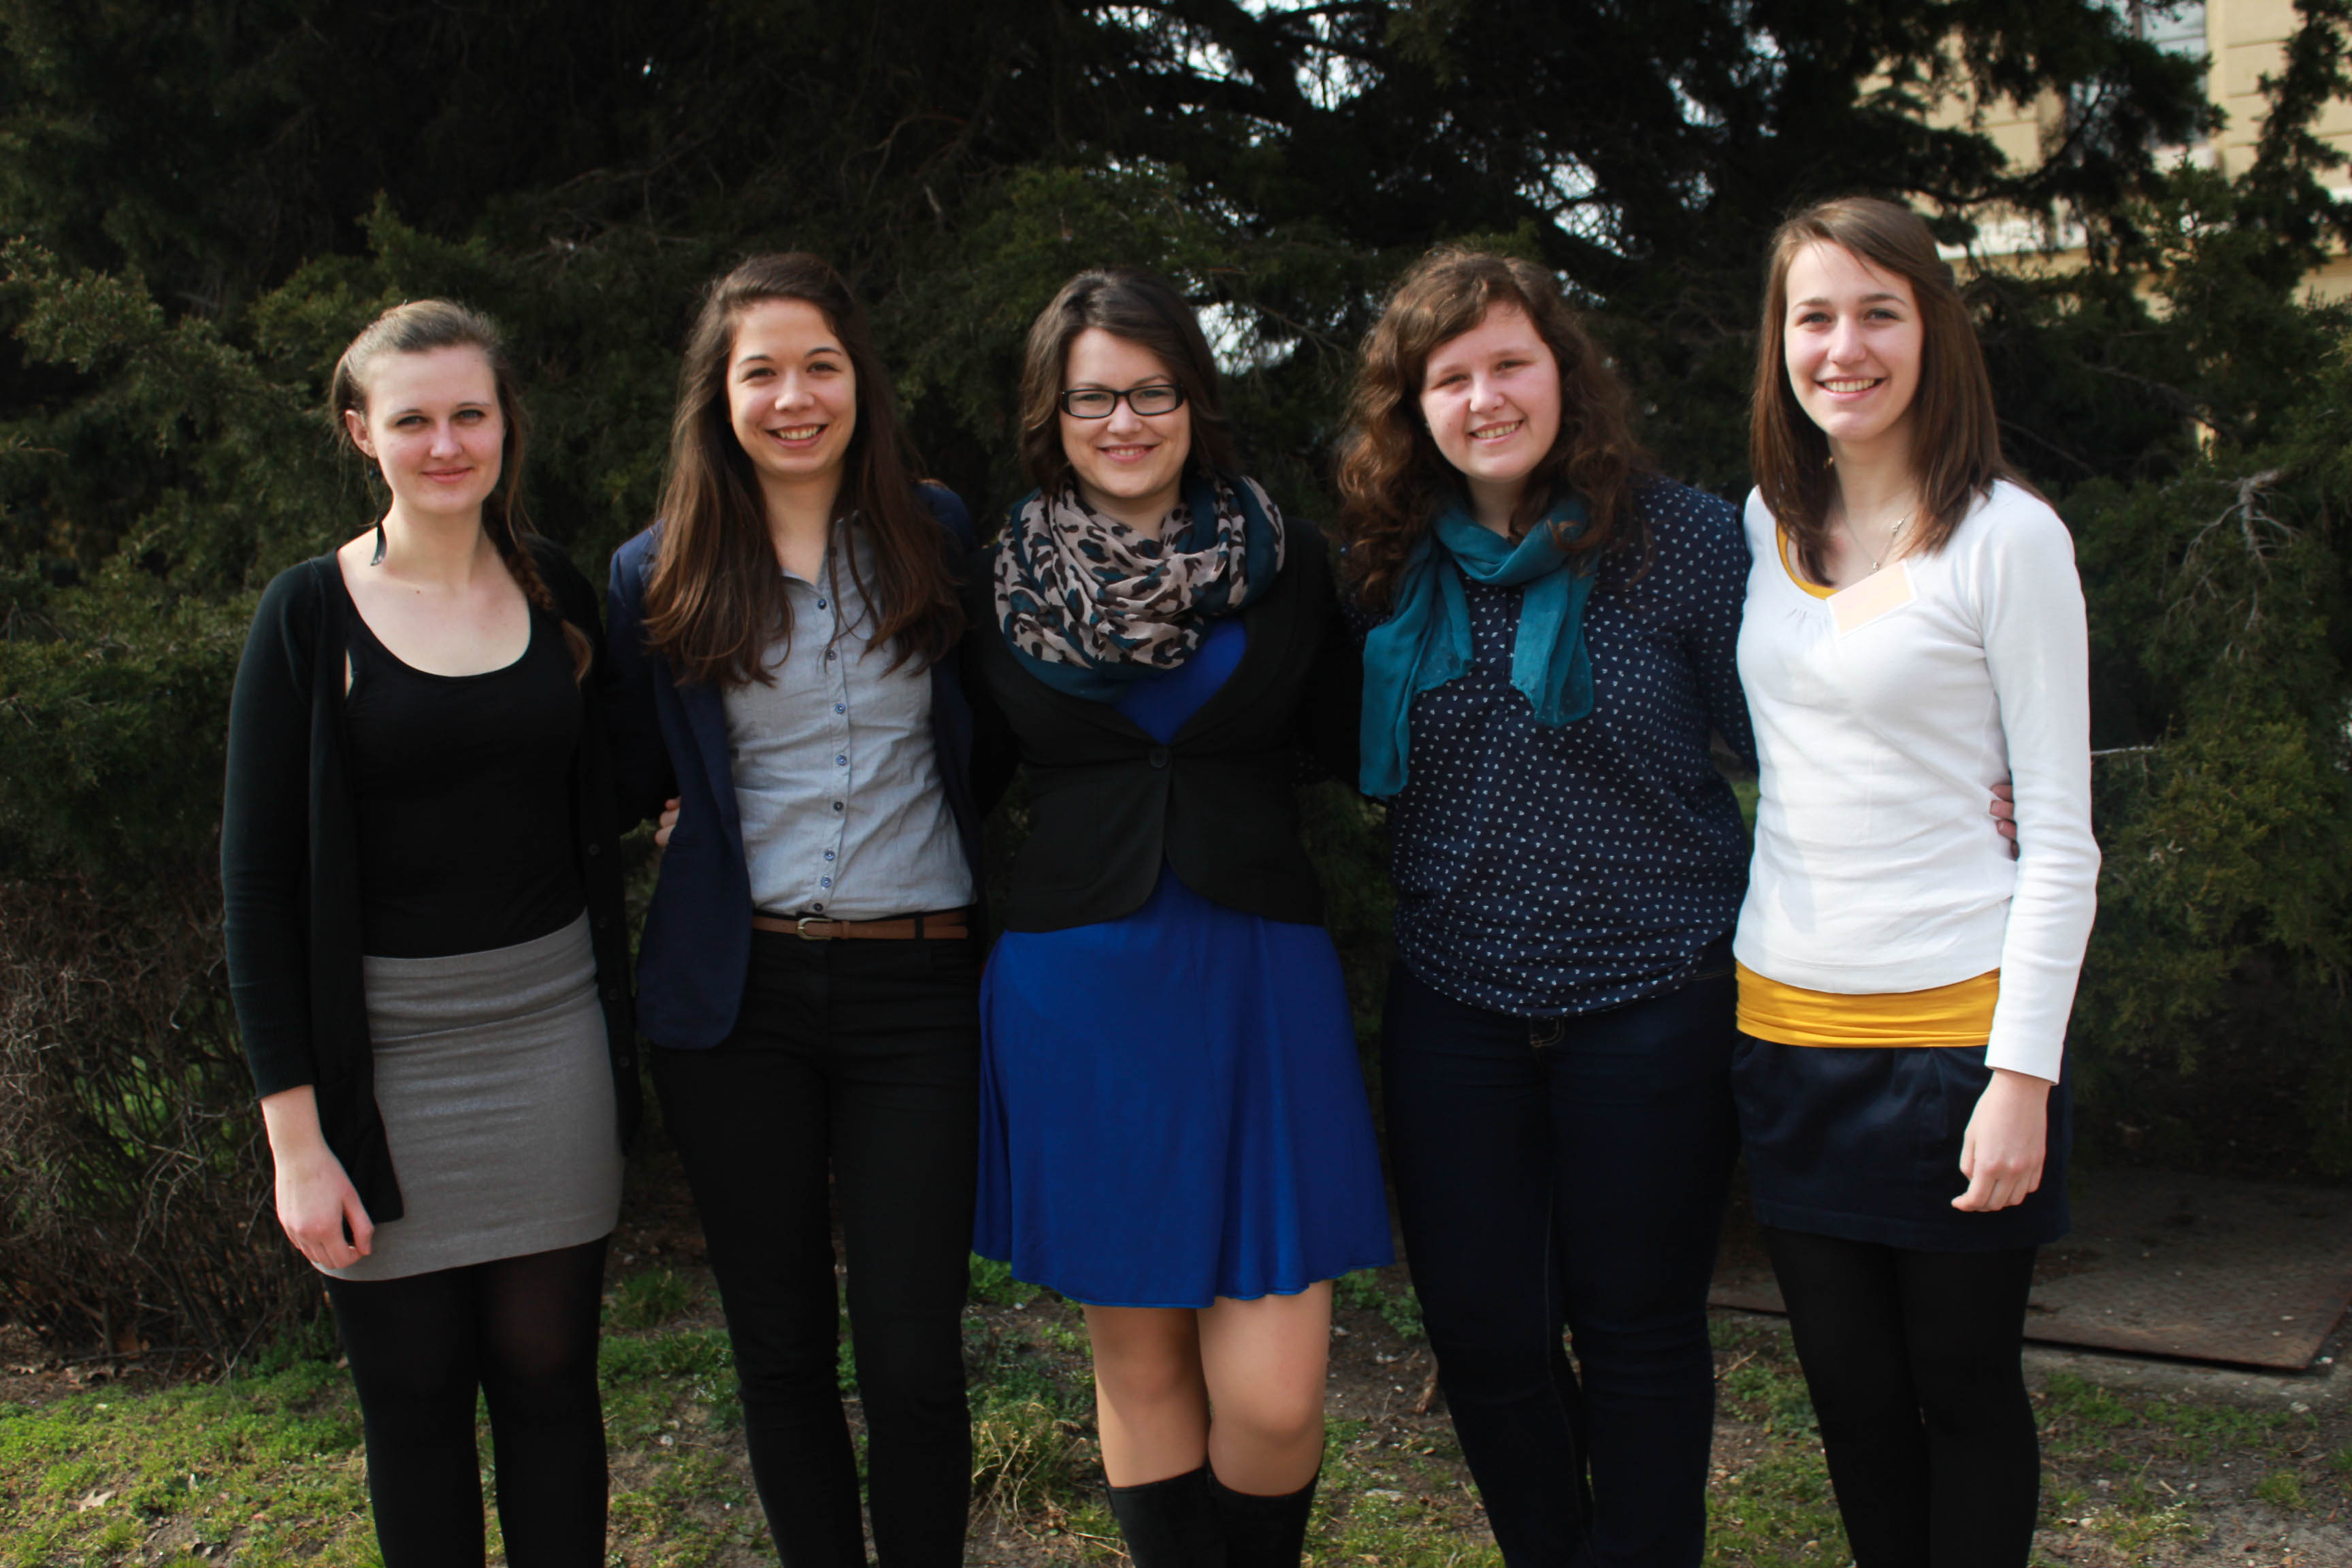 Second from left to right: Horváth Eszter, Program Coordinator of the Spring Meeting 2015